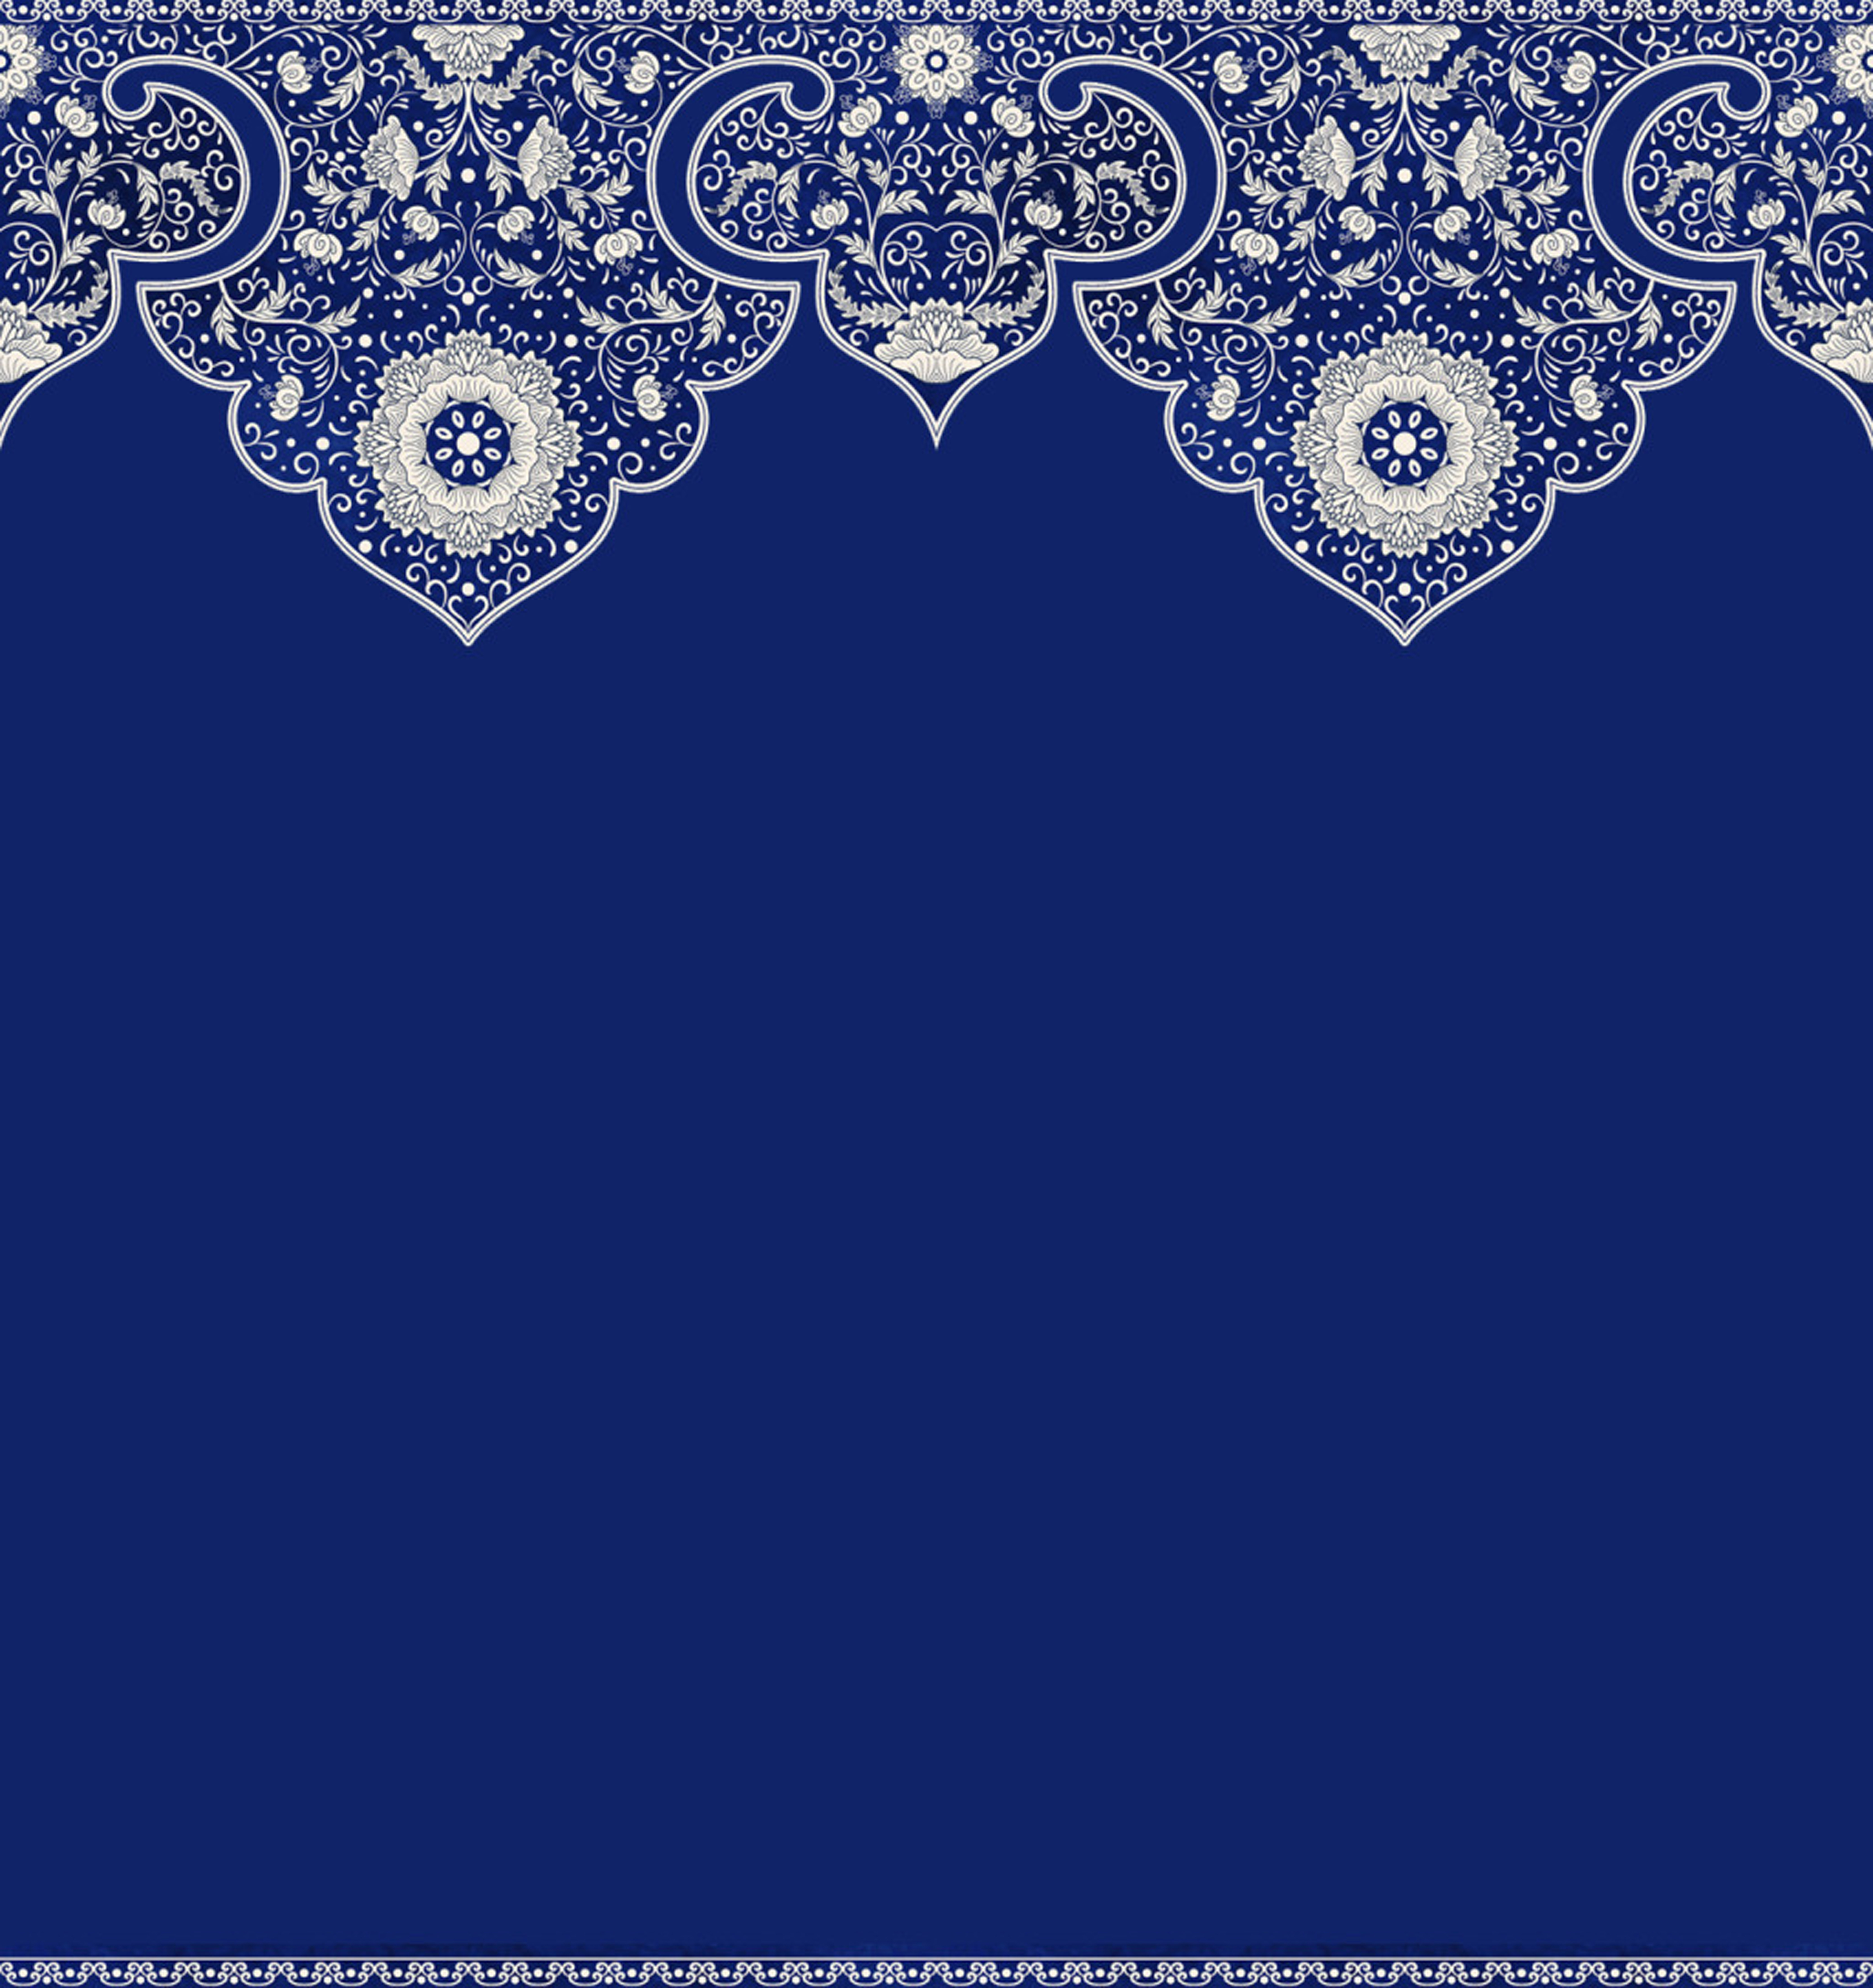 Simple Dark Blue Background Poster, Navy Blue, Style, Lace ...